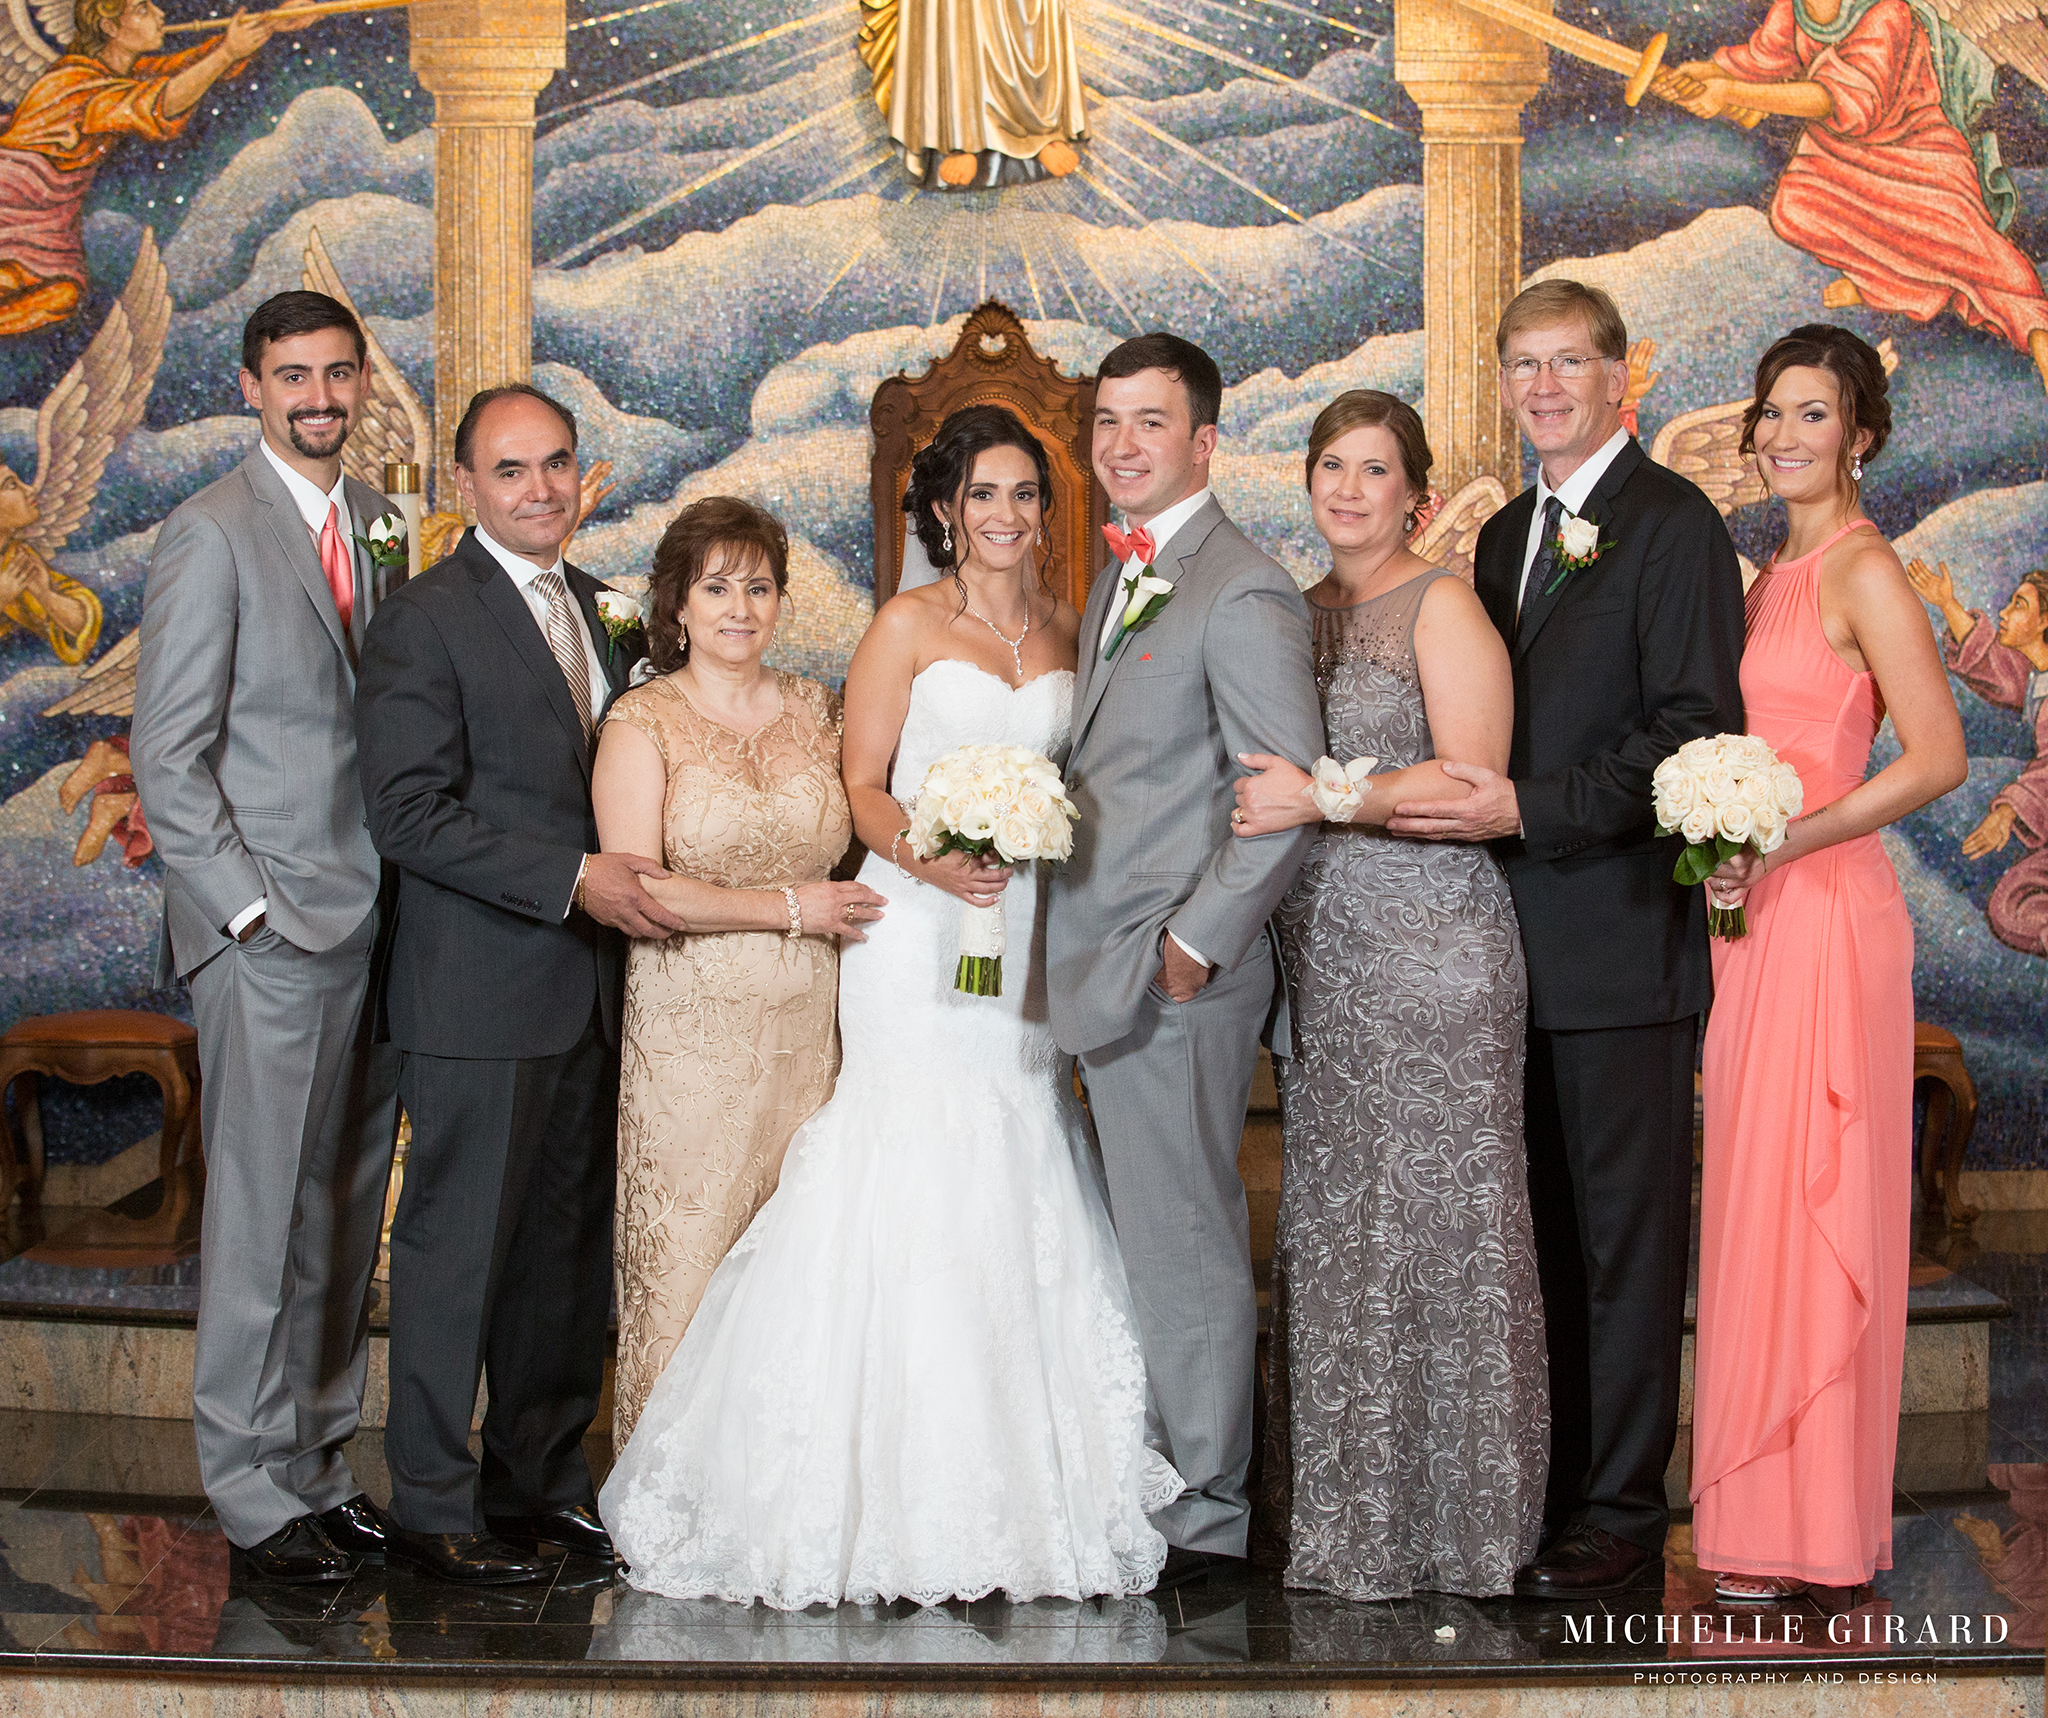 TraditionalLudlowMAWedding_MichelleGirardPhotography03.jpg